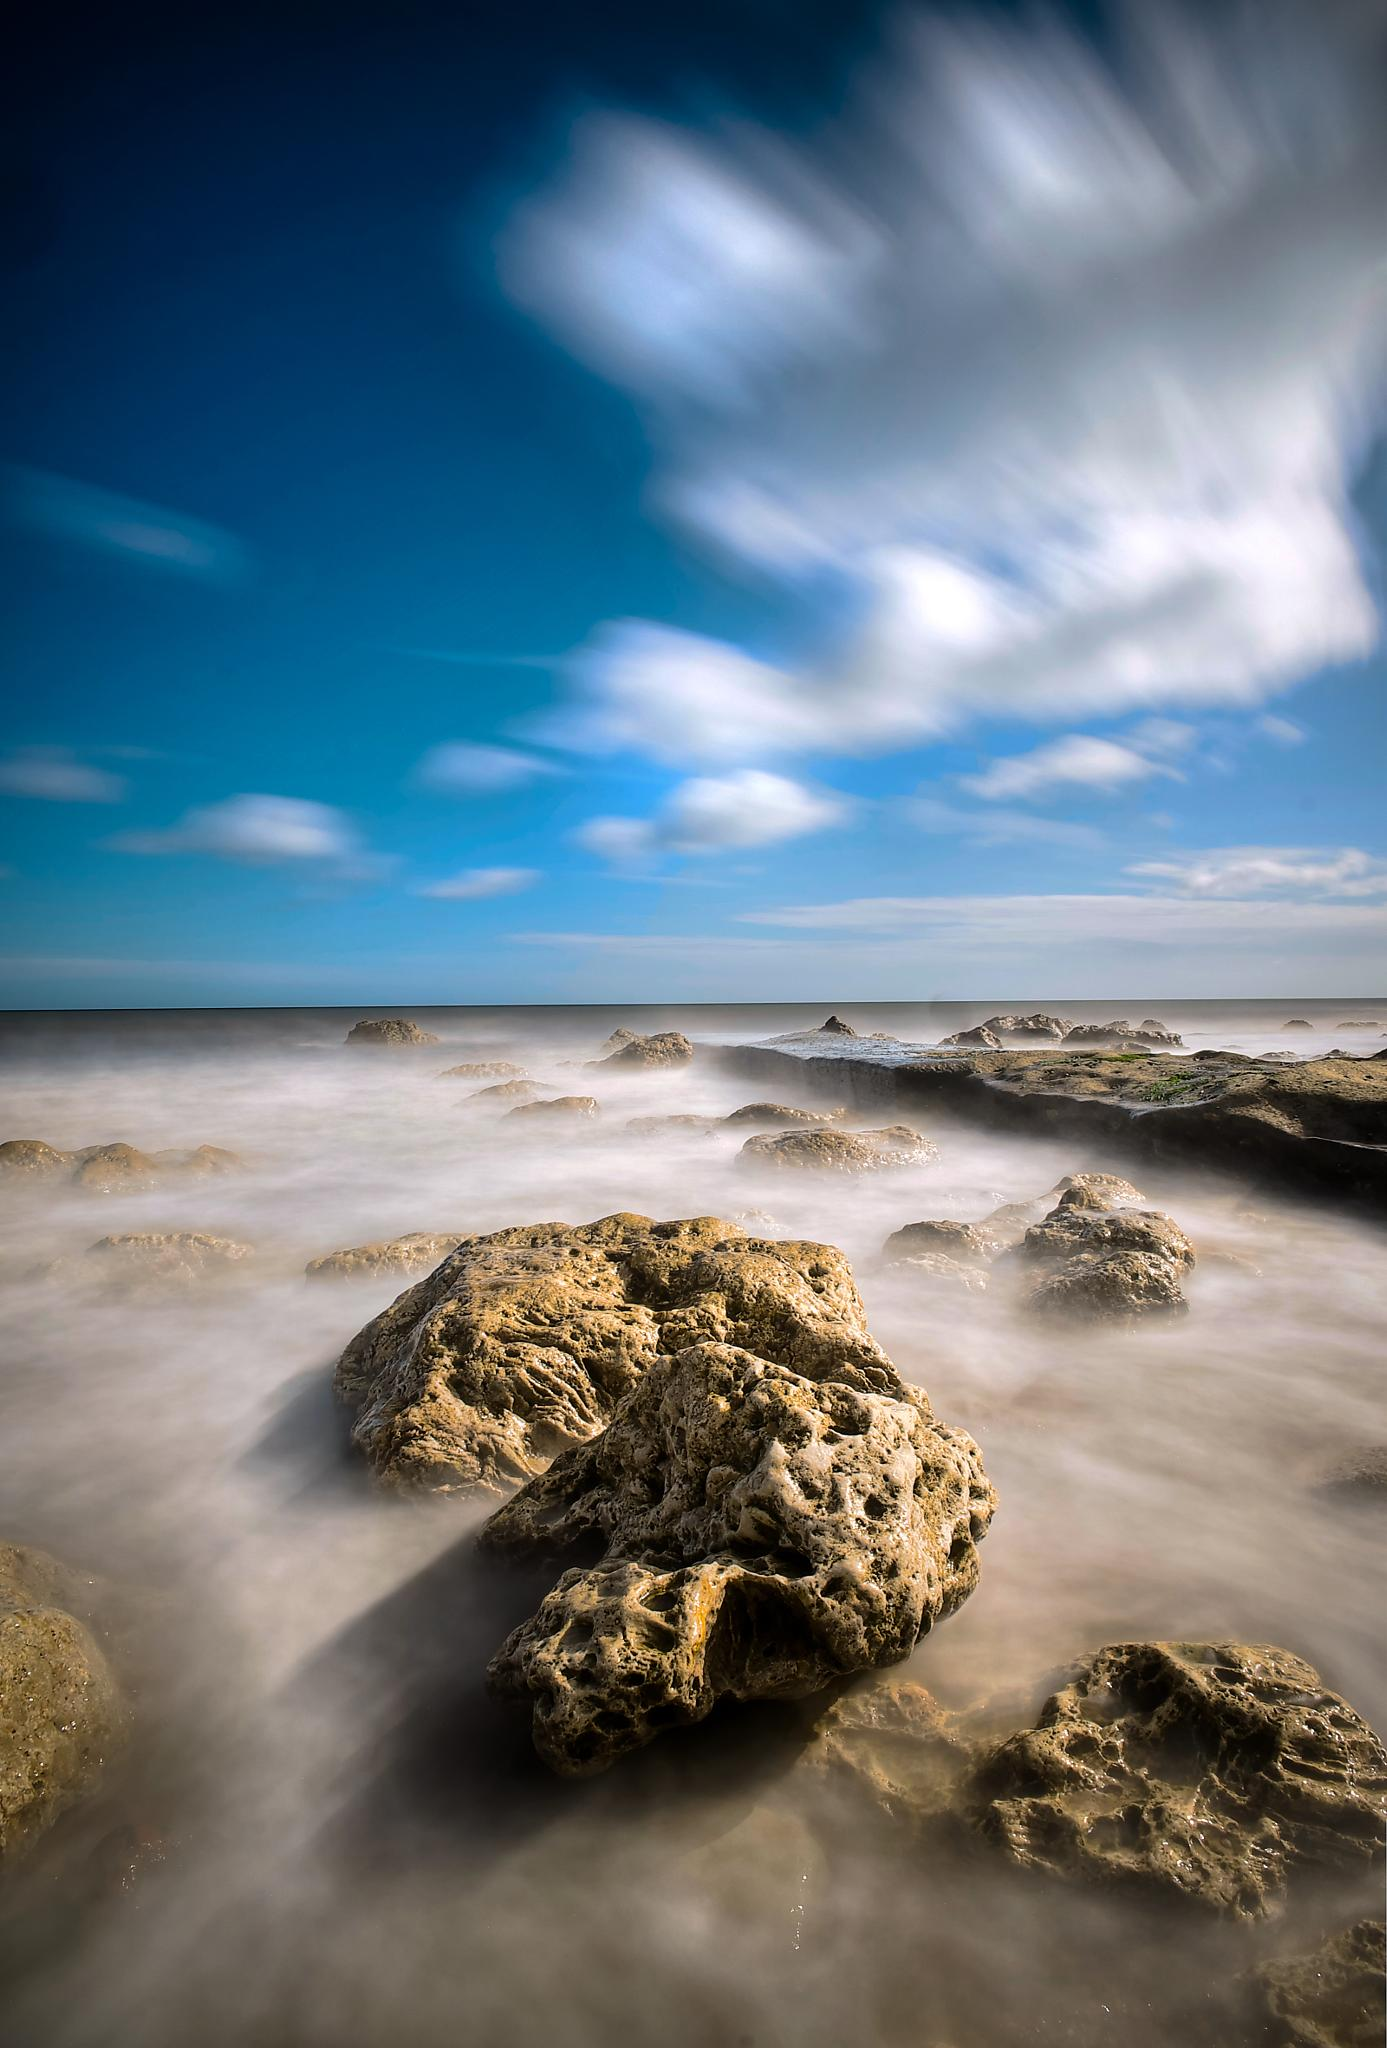 incomming tide by Peter Edwardo Vicente.